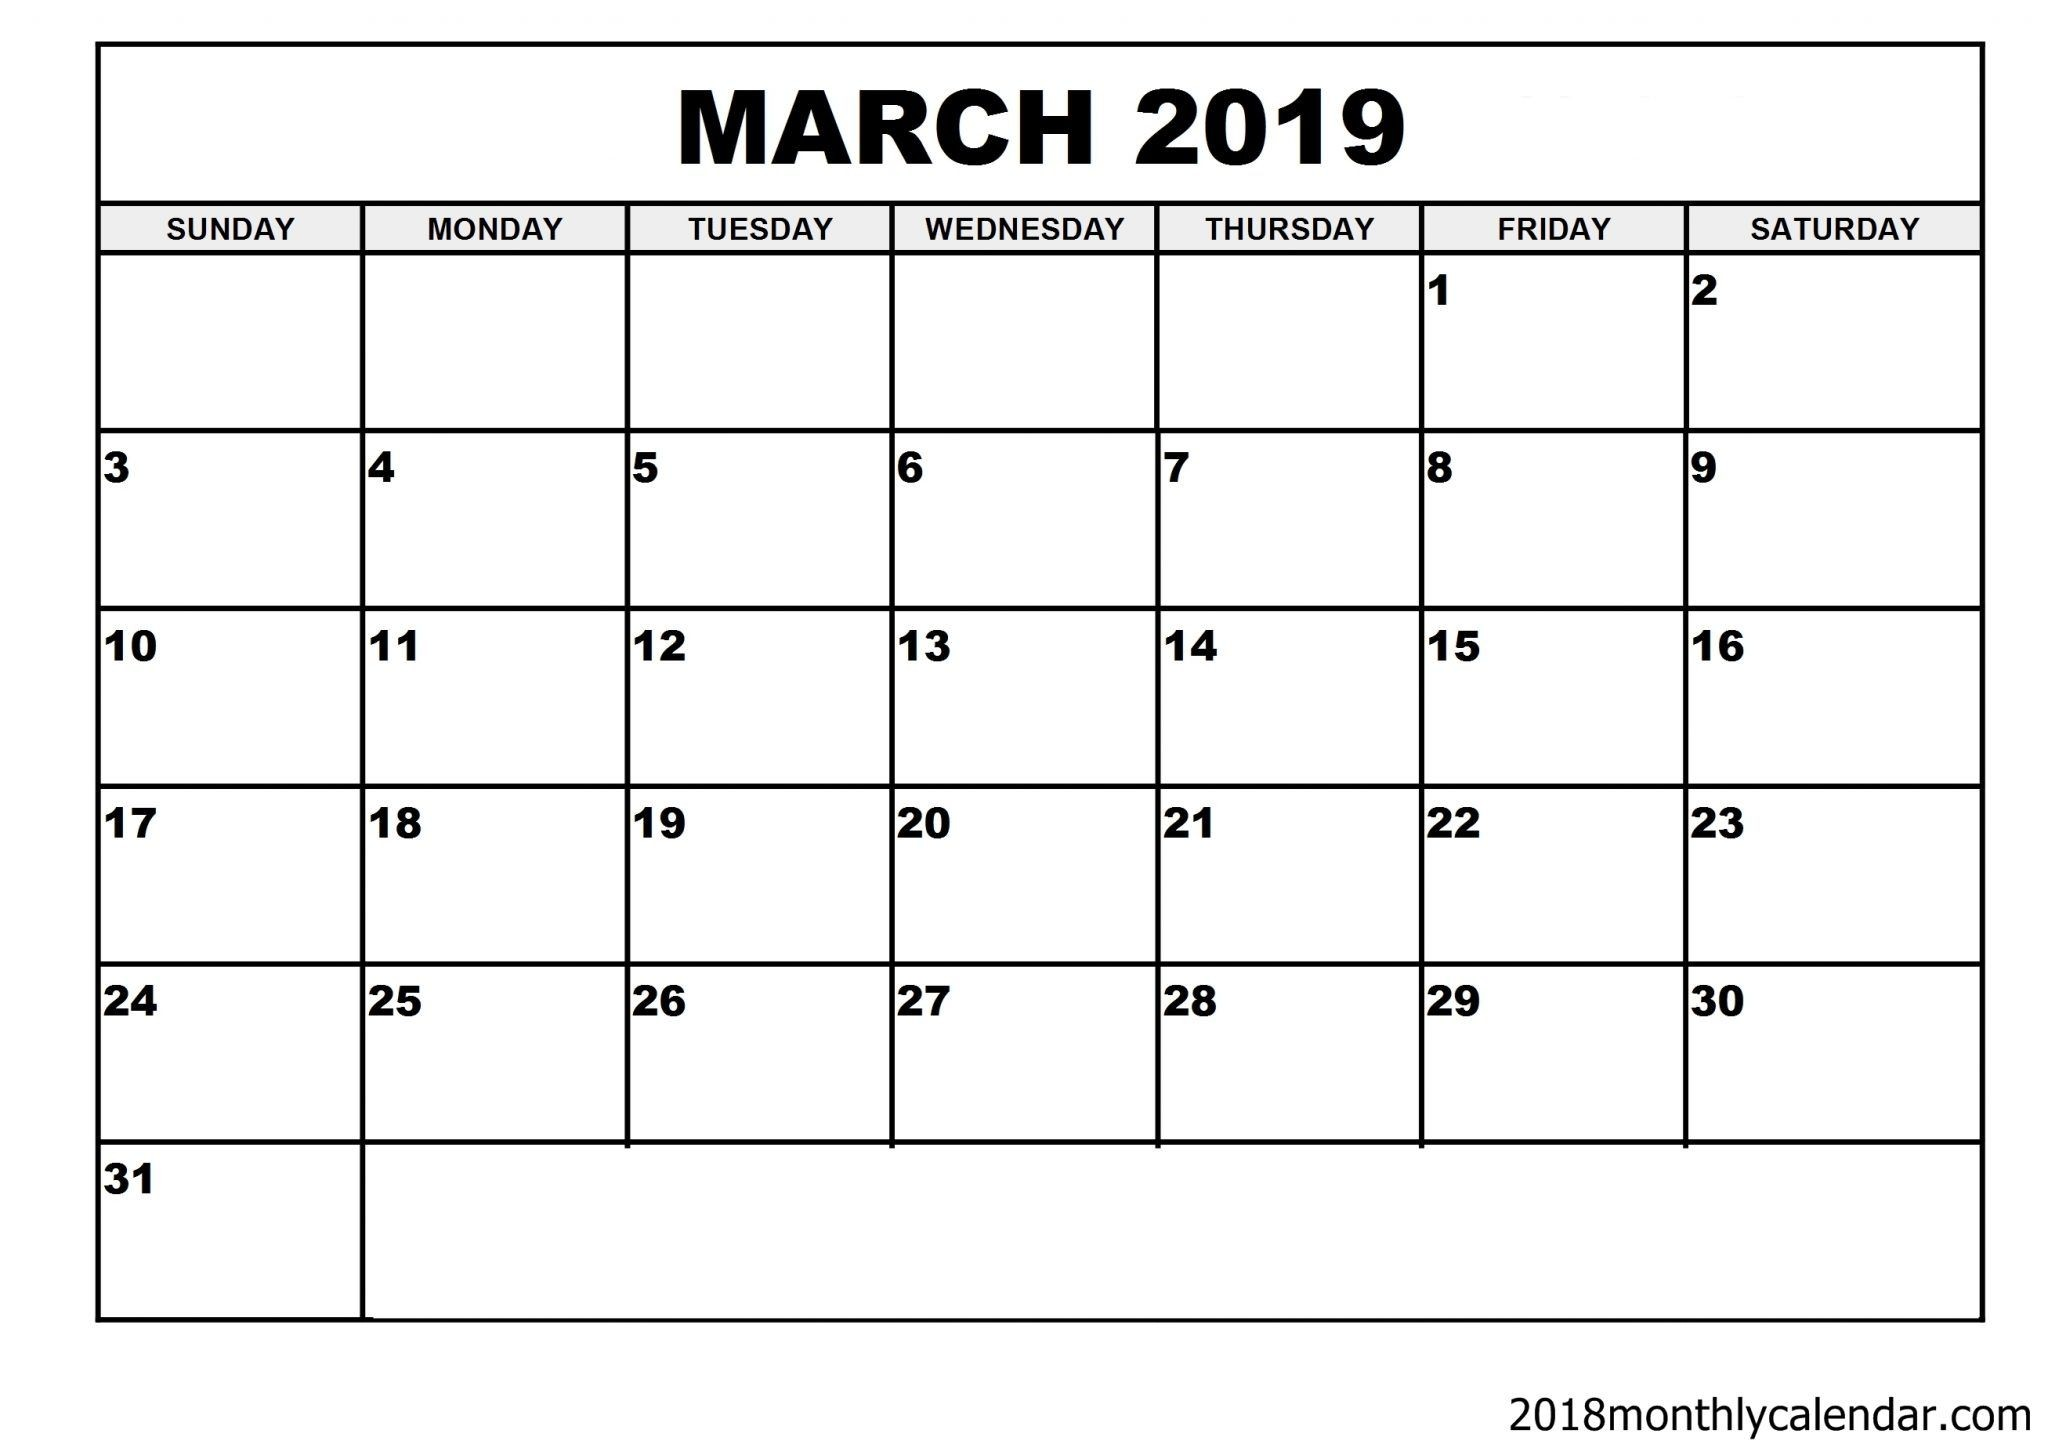 March Calendar Blank 2019 Más Arriba-a-fecha 150 Best Free March 2019 Calendar Printable Templates Images In 2019 Of March Calendar Blank 2019 Más Recientemente Liberado Art Prints Lunar Calendar 2019